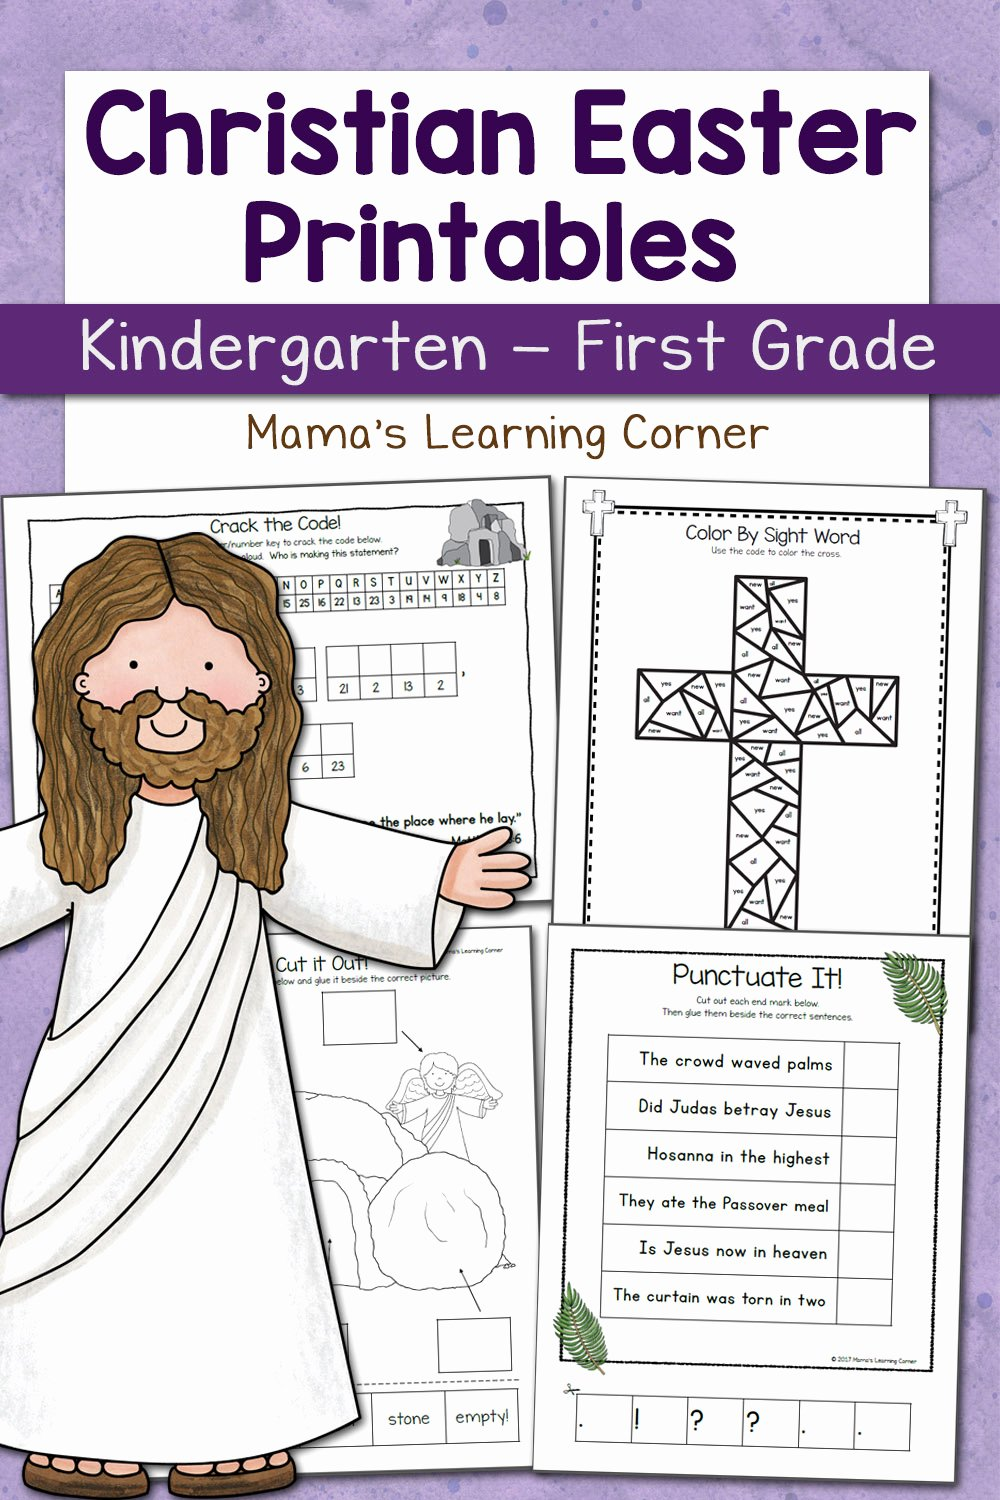 Christian Easter Worksheets for K and 1st